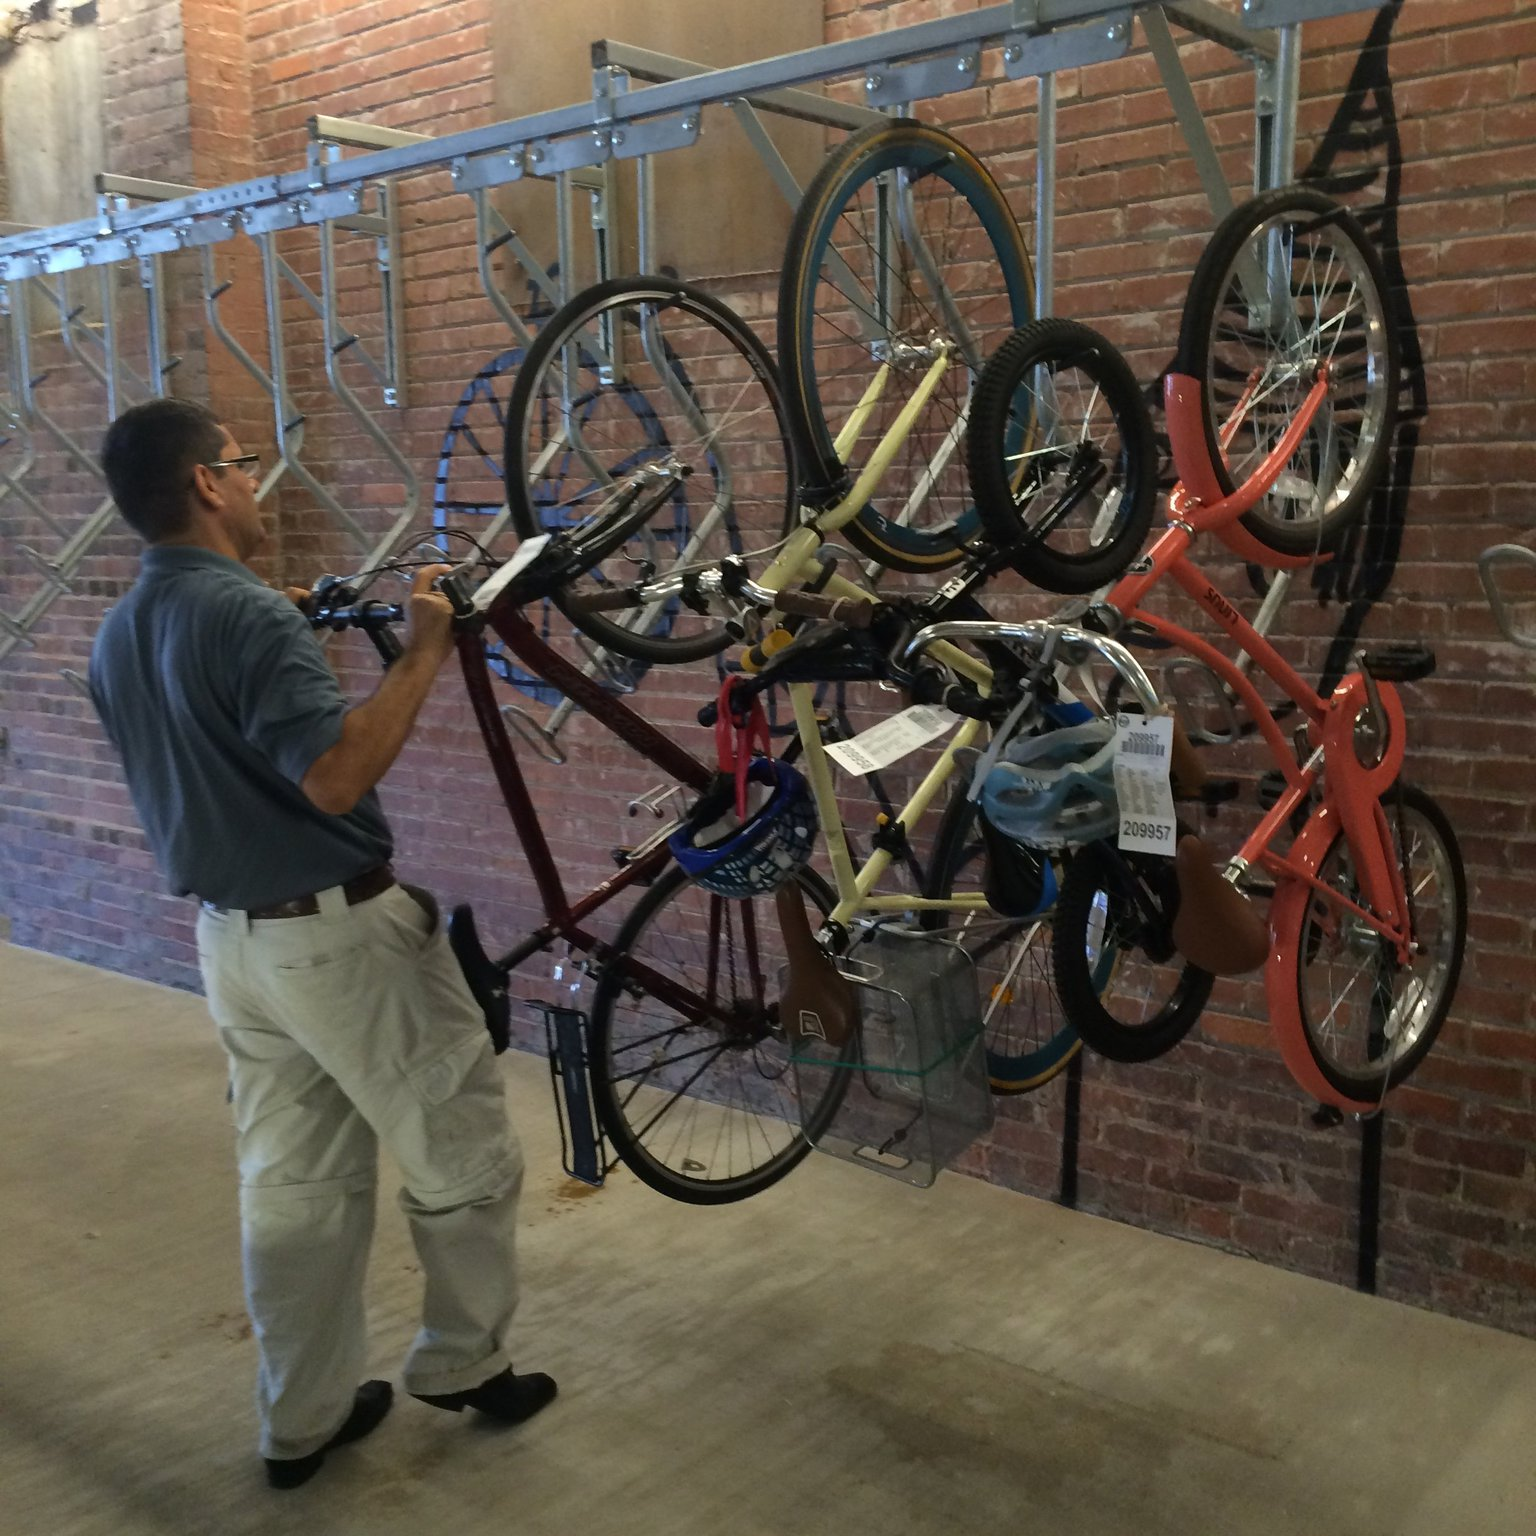 Bicycle Valet. photo credit to AJC